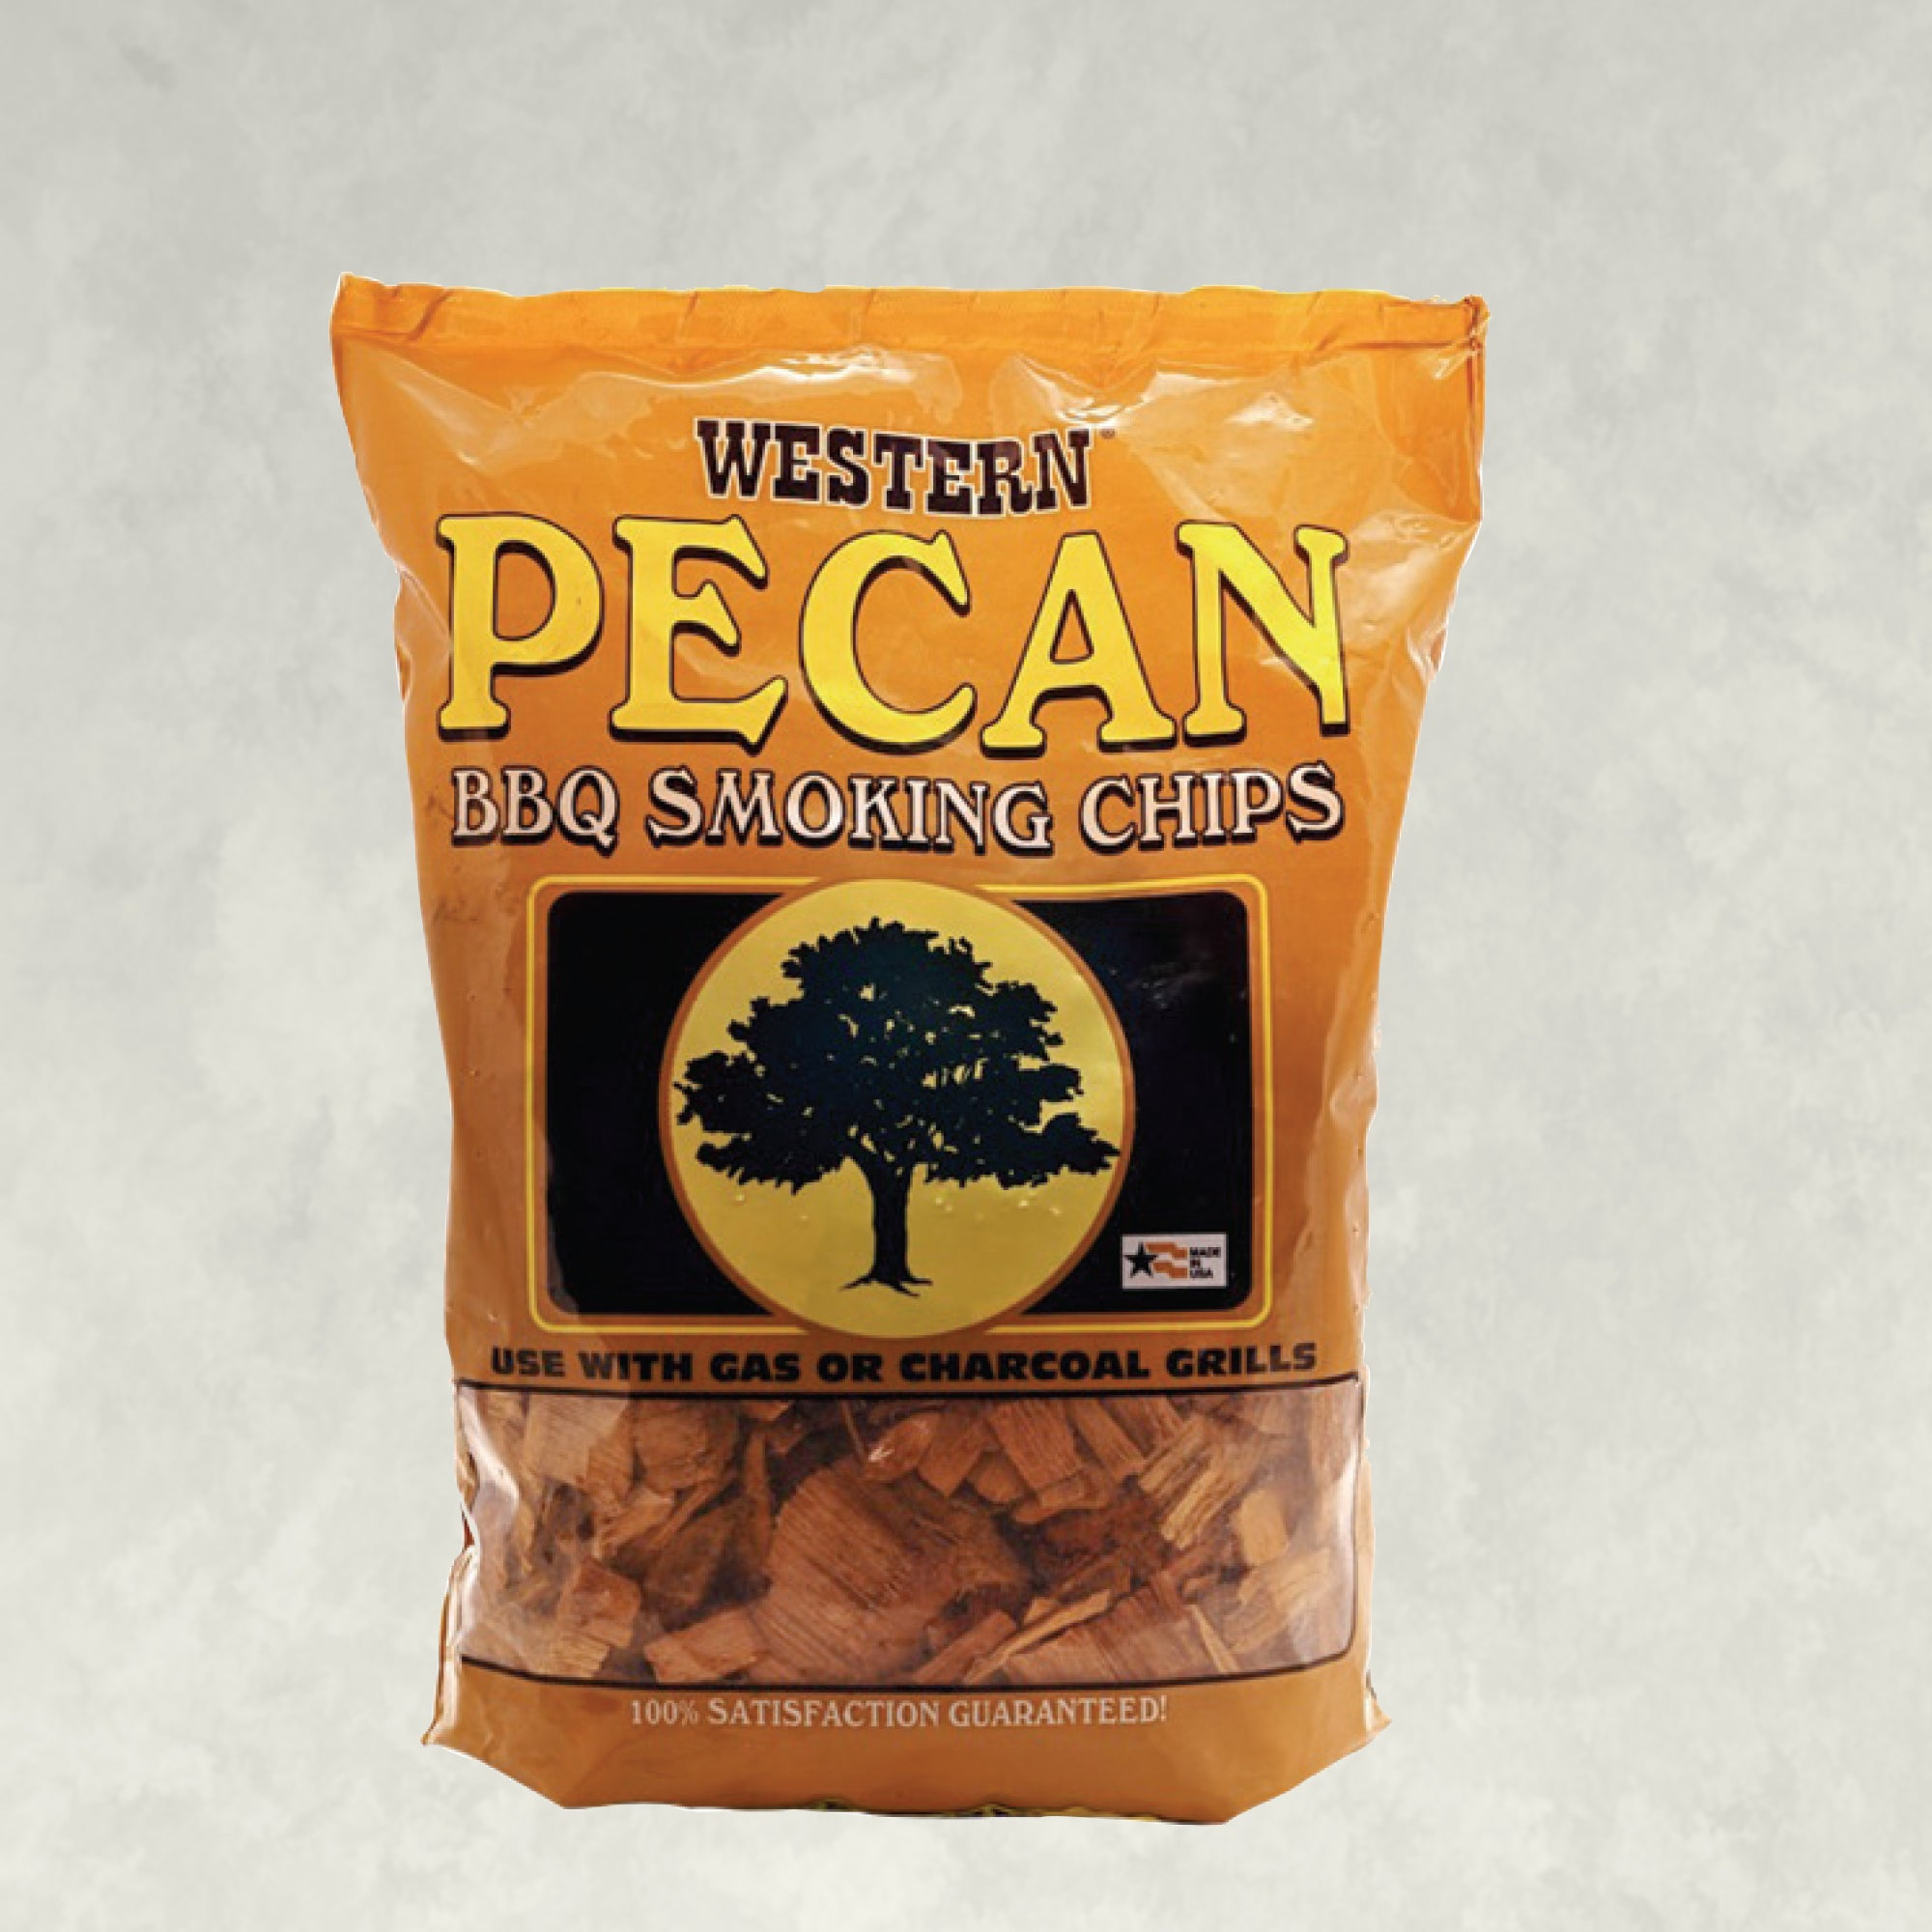 Western Pecan Smoking Chips